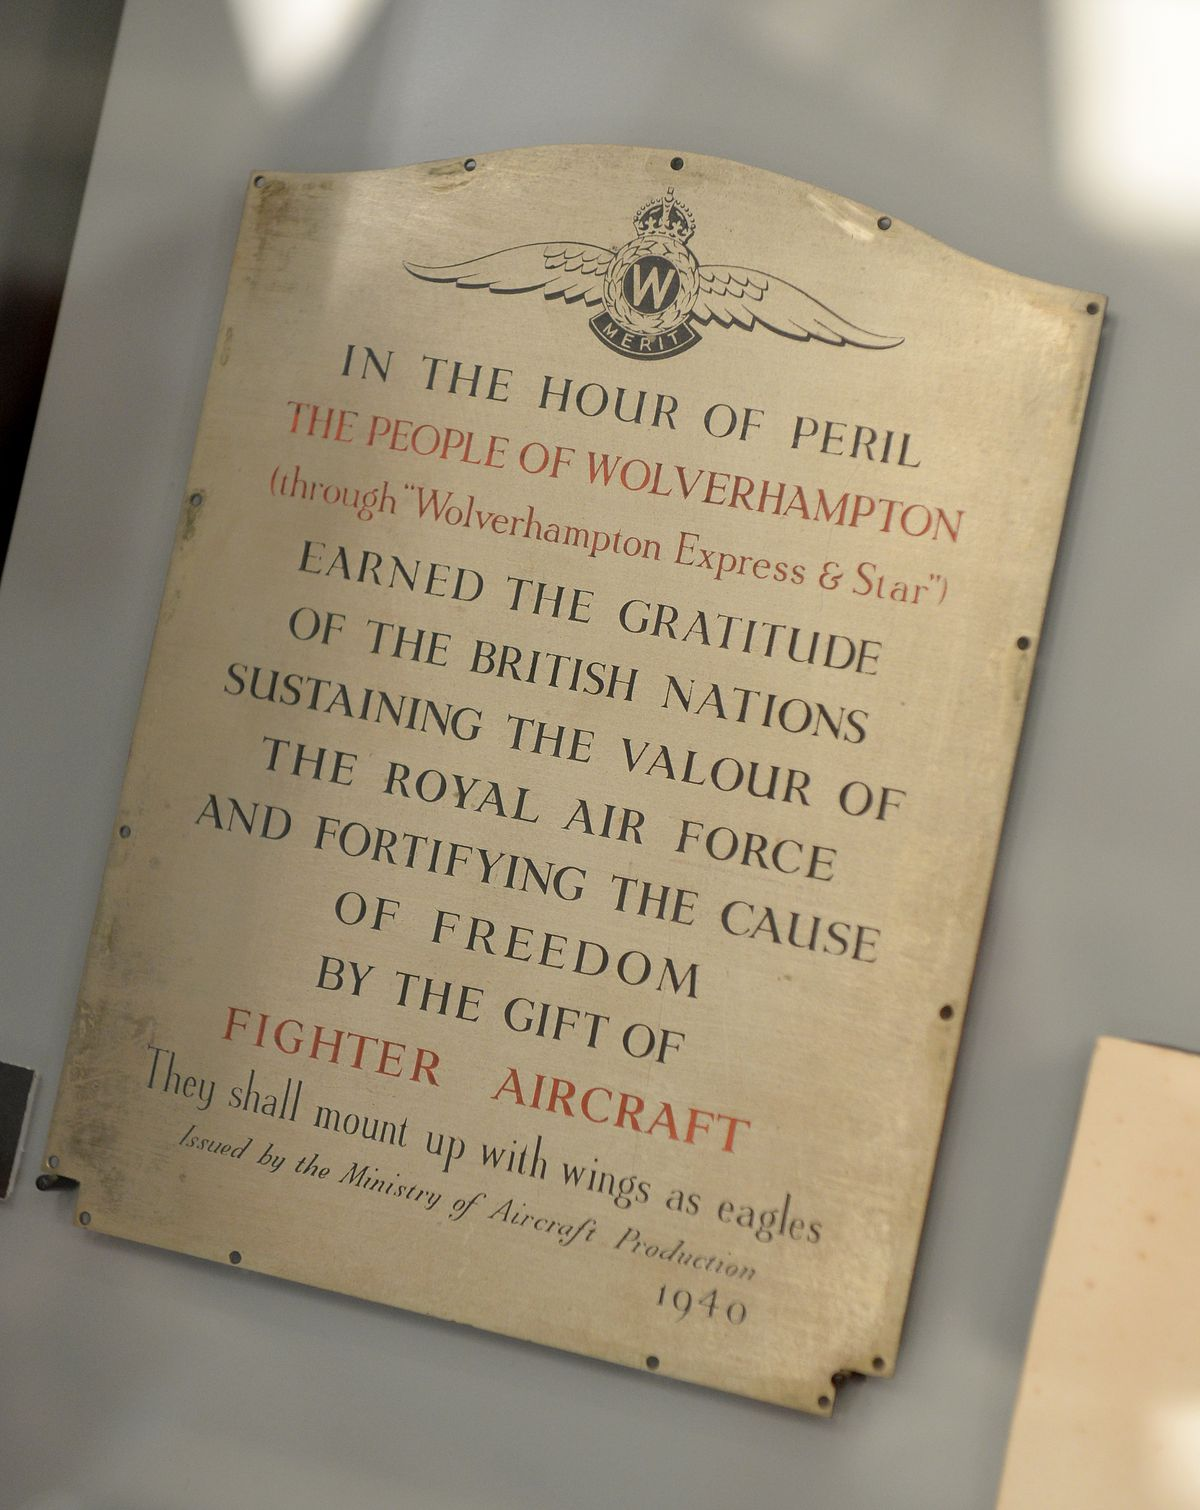 A plaque awarded to the Express & Star in 1940, for its contribution to raising funds for fighter aircraft, is part of the exhibition.